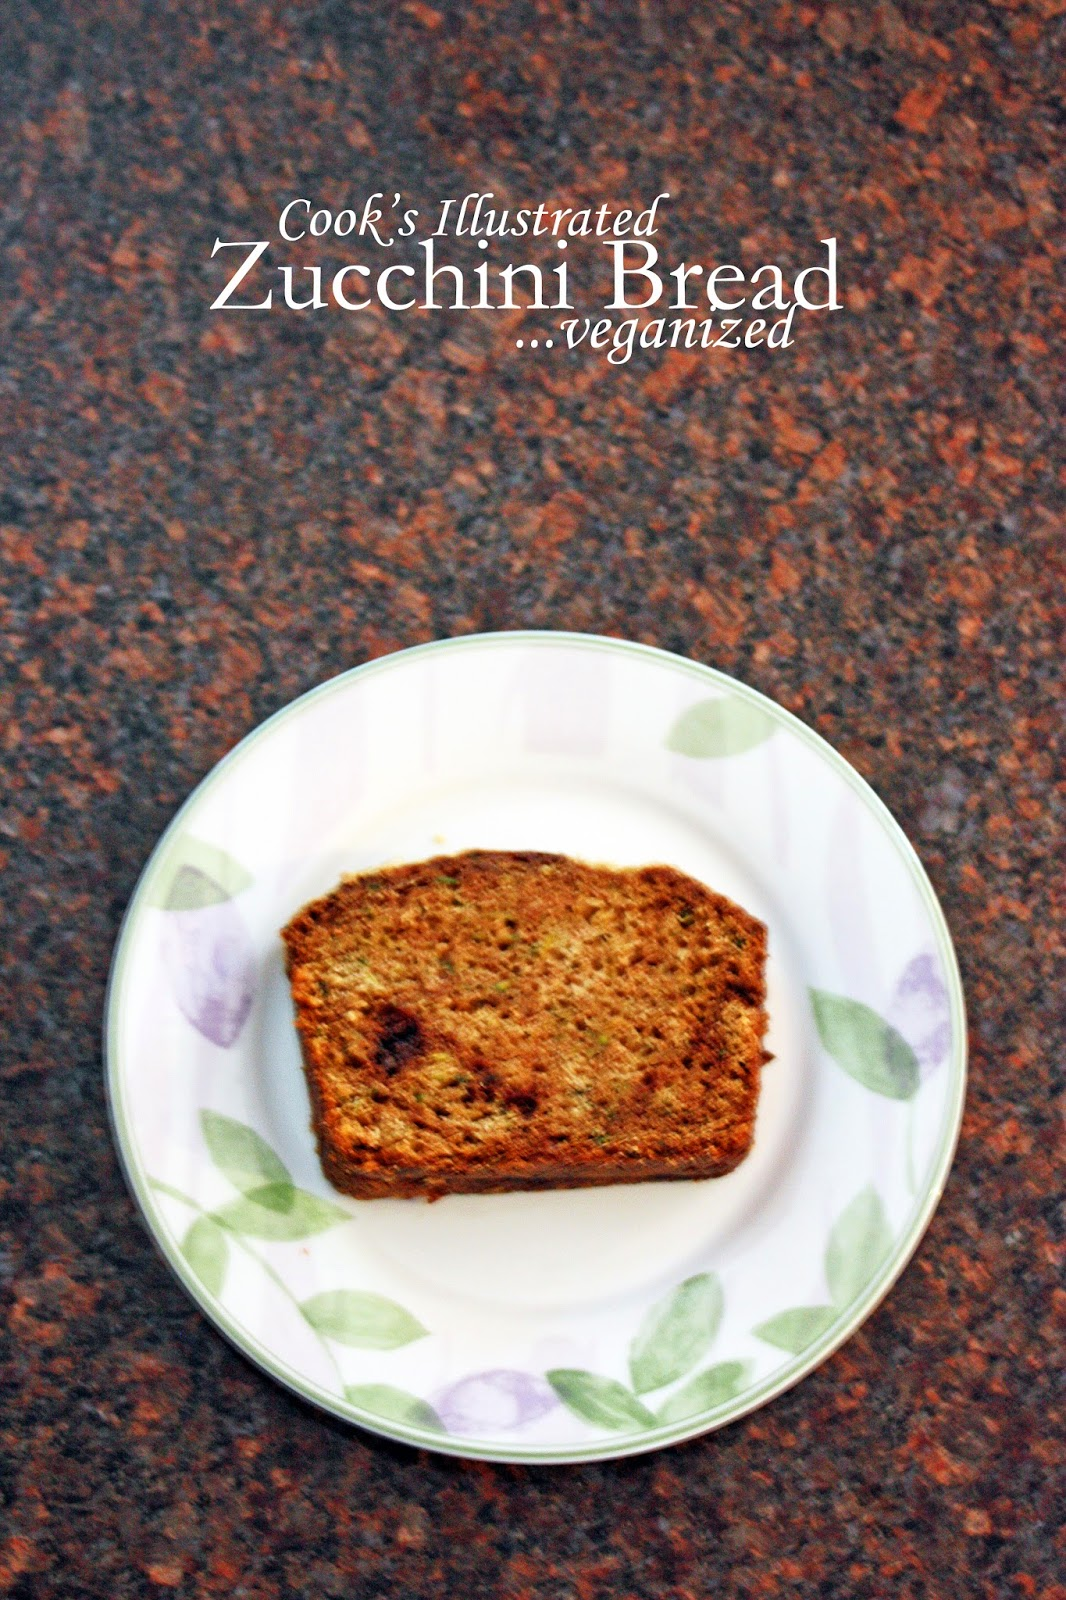 cook's illustrated zucchini bread vegan